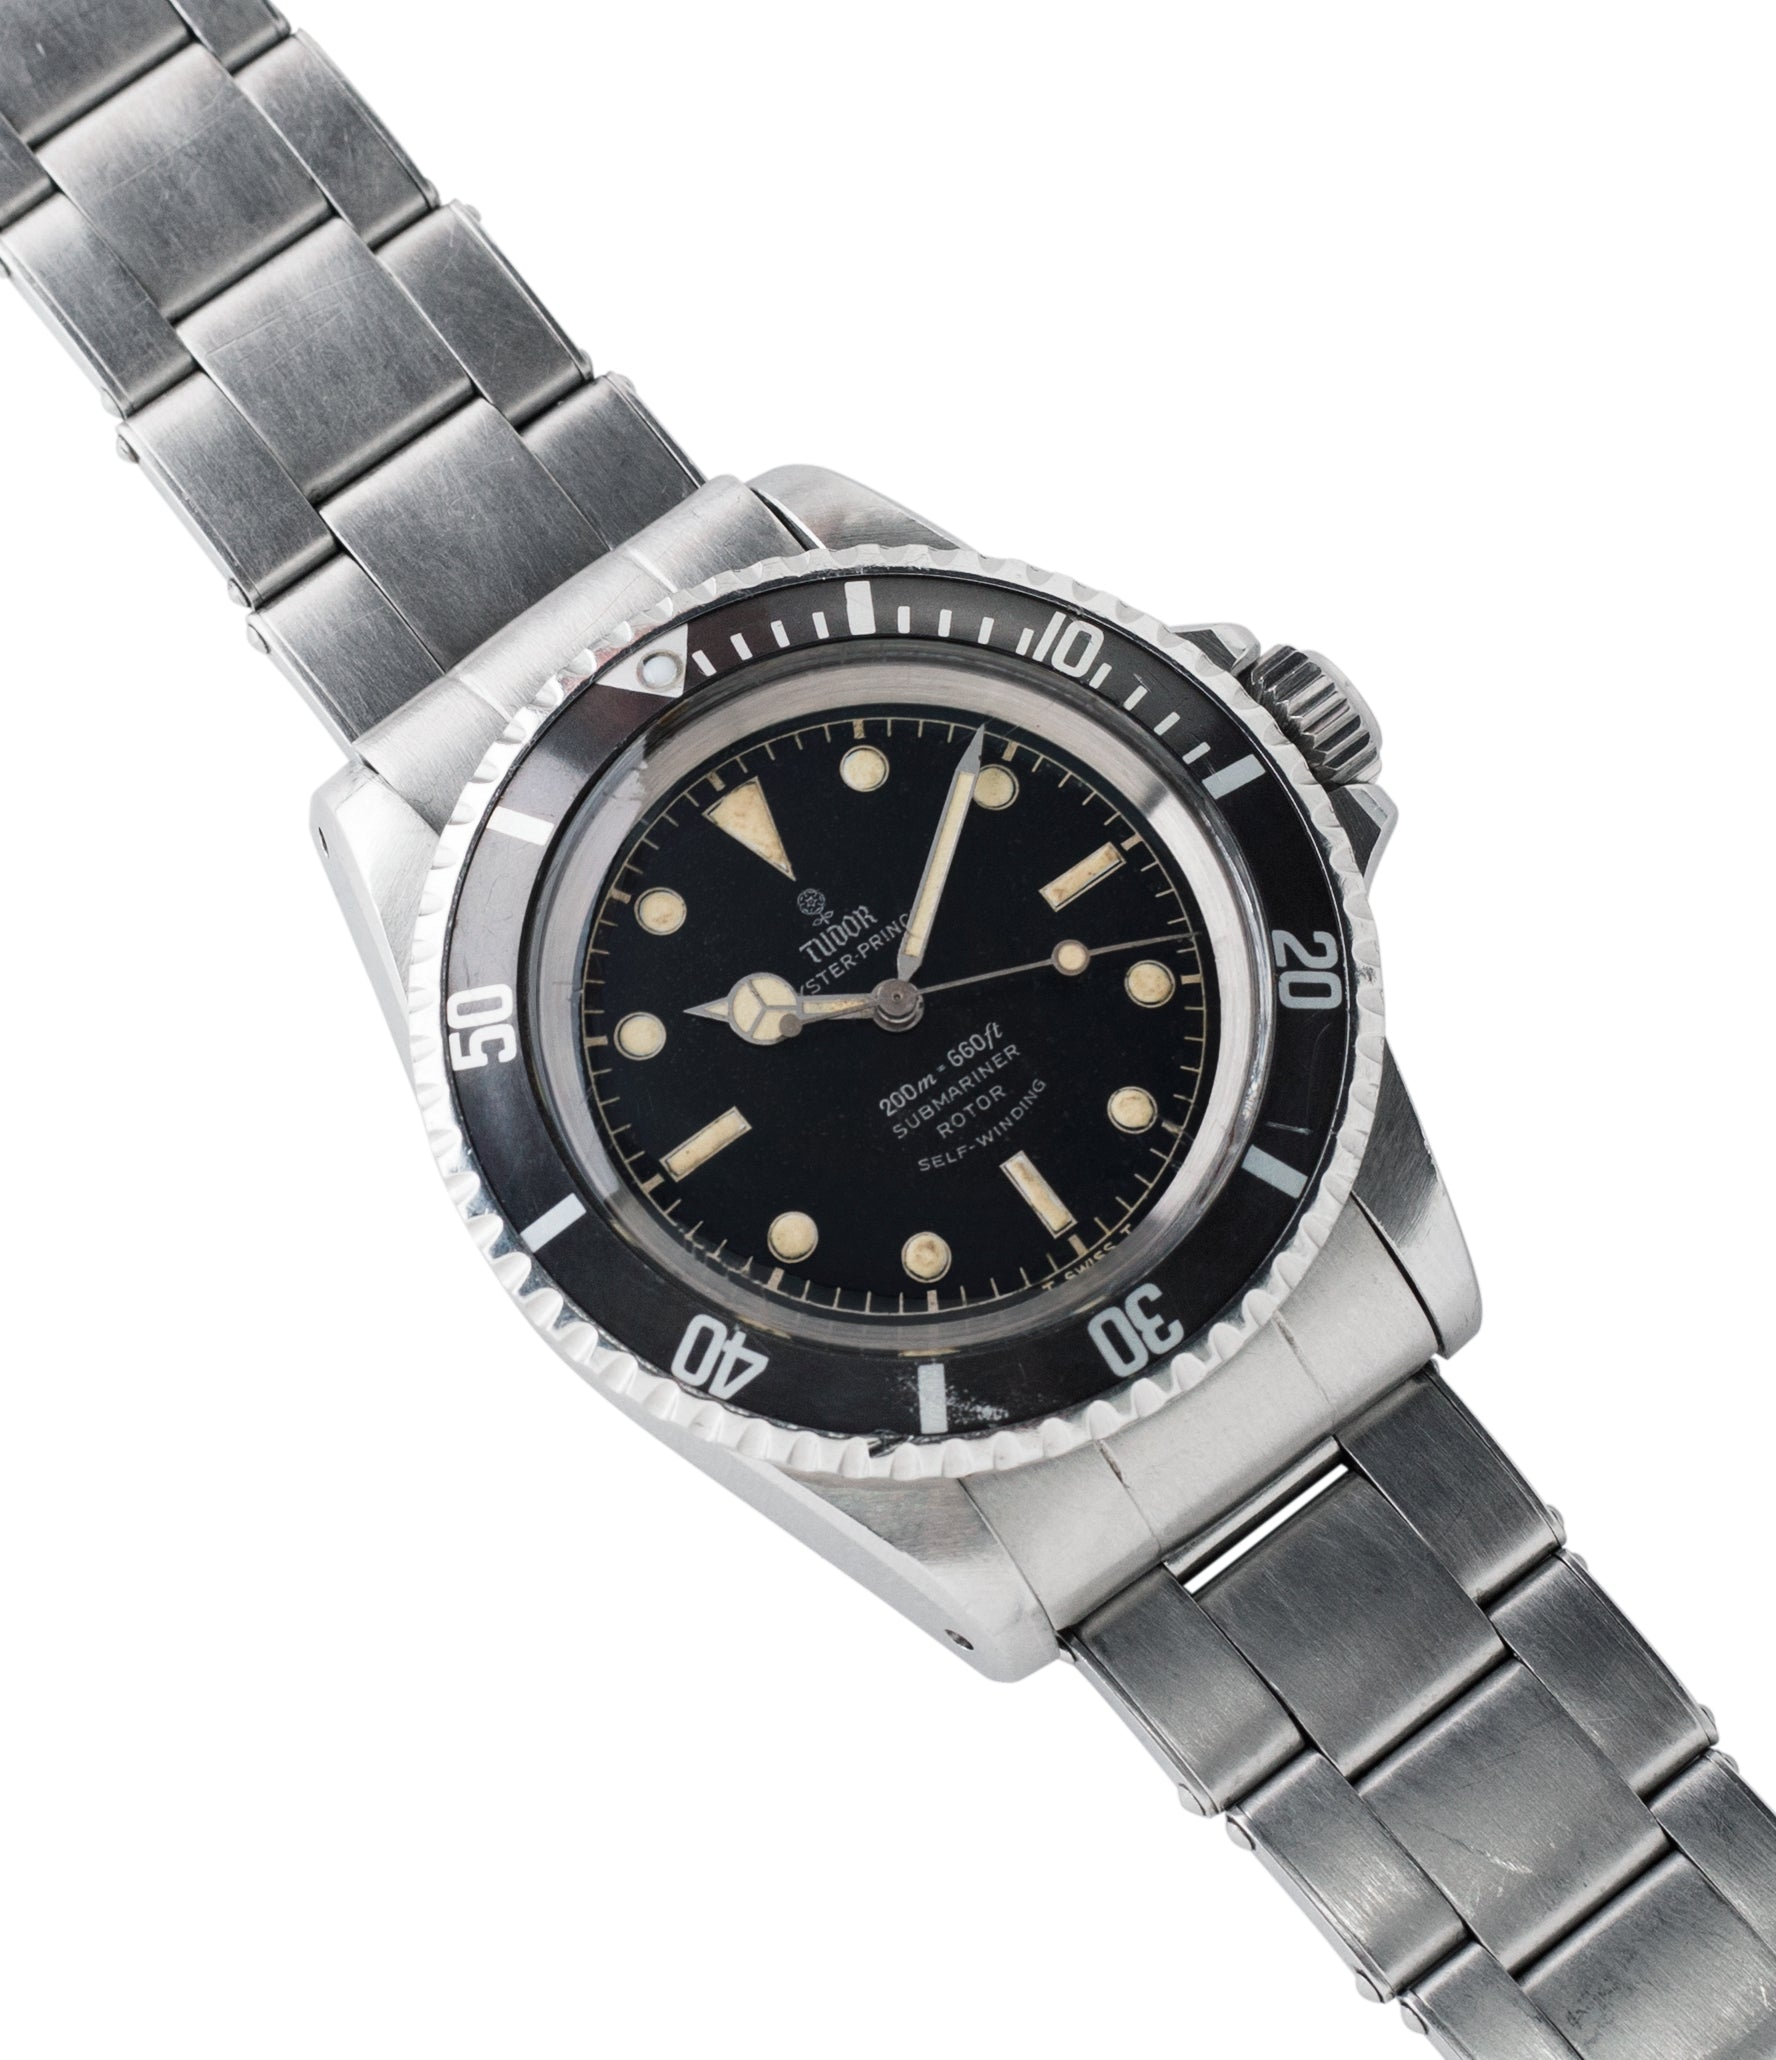 buy Tudor Submariner 7928 Oyster Prince Cal. 390 automatic sport watch at A Collected Man London online vintage watch specialist UK